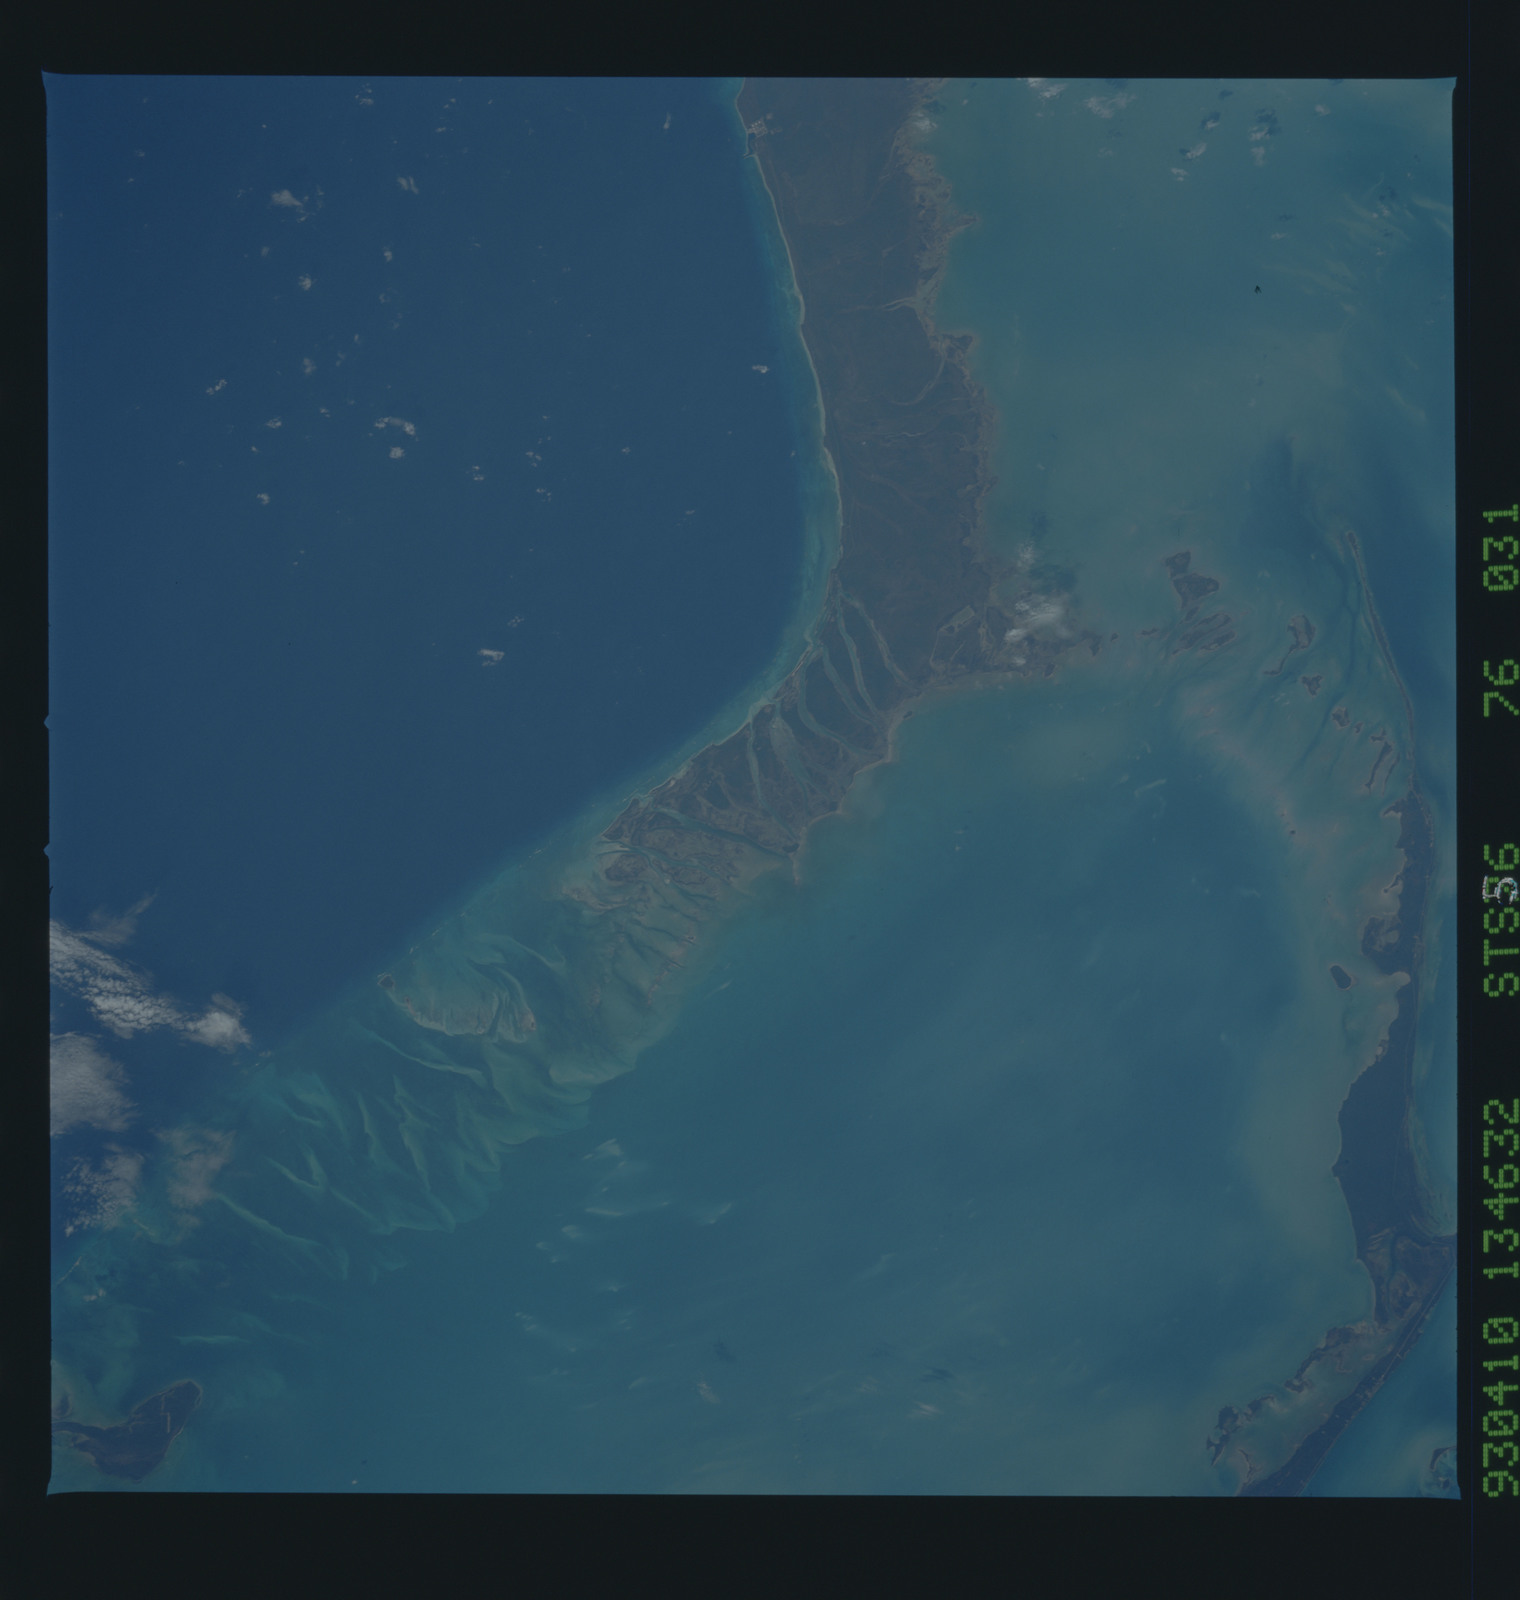 STS056-76-031 - STS-056 - Earth observations taken from Discovery during STS-56 mission